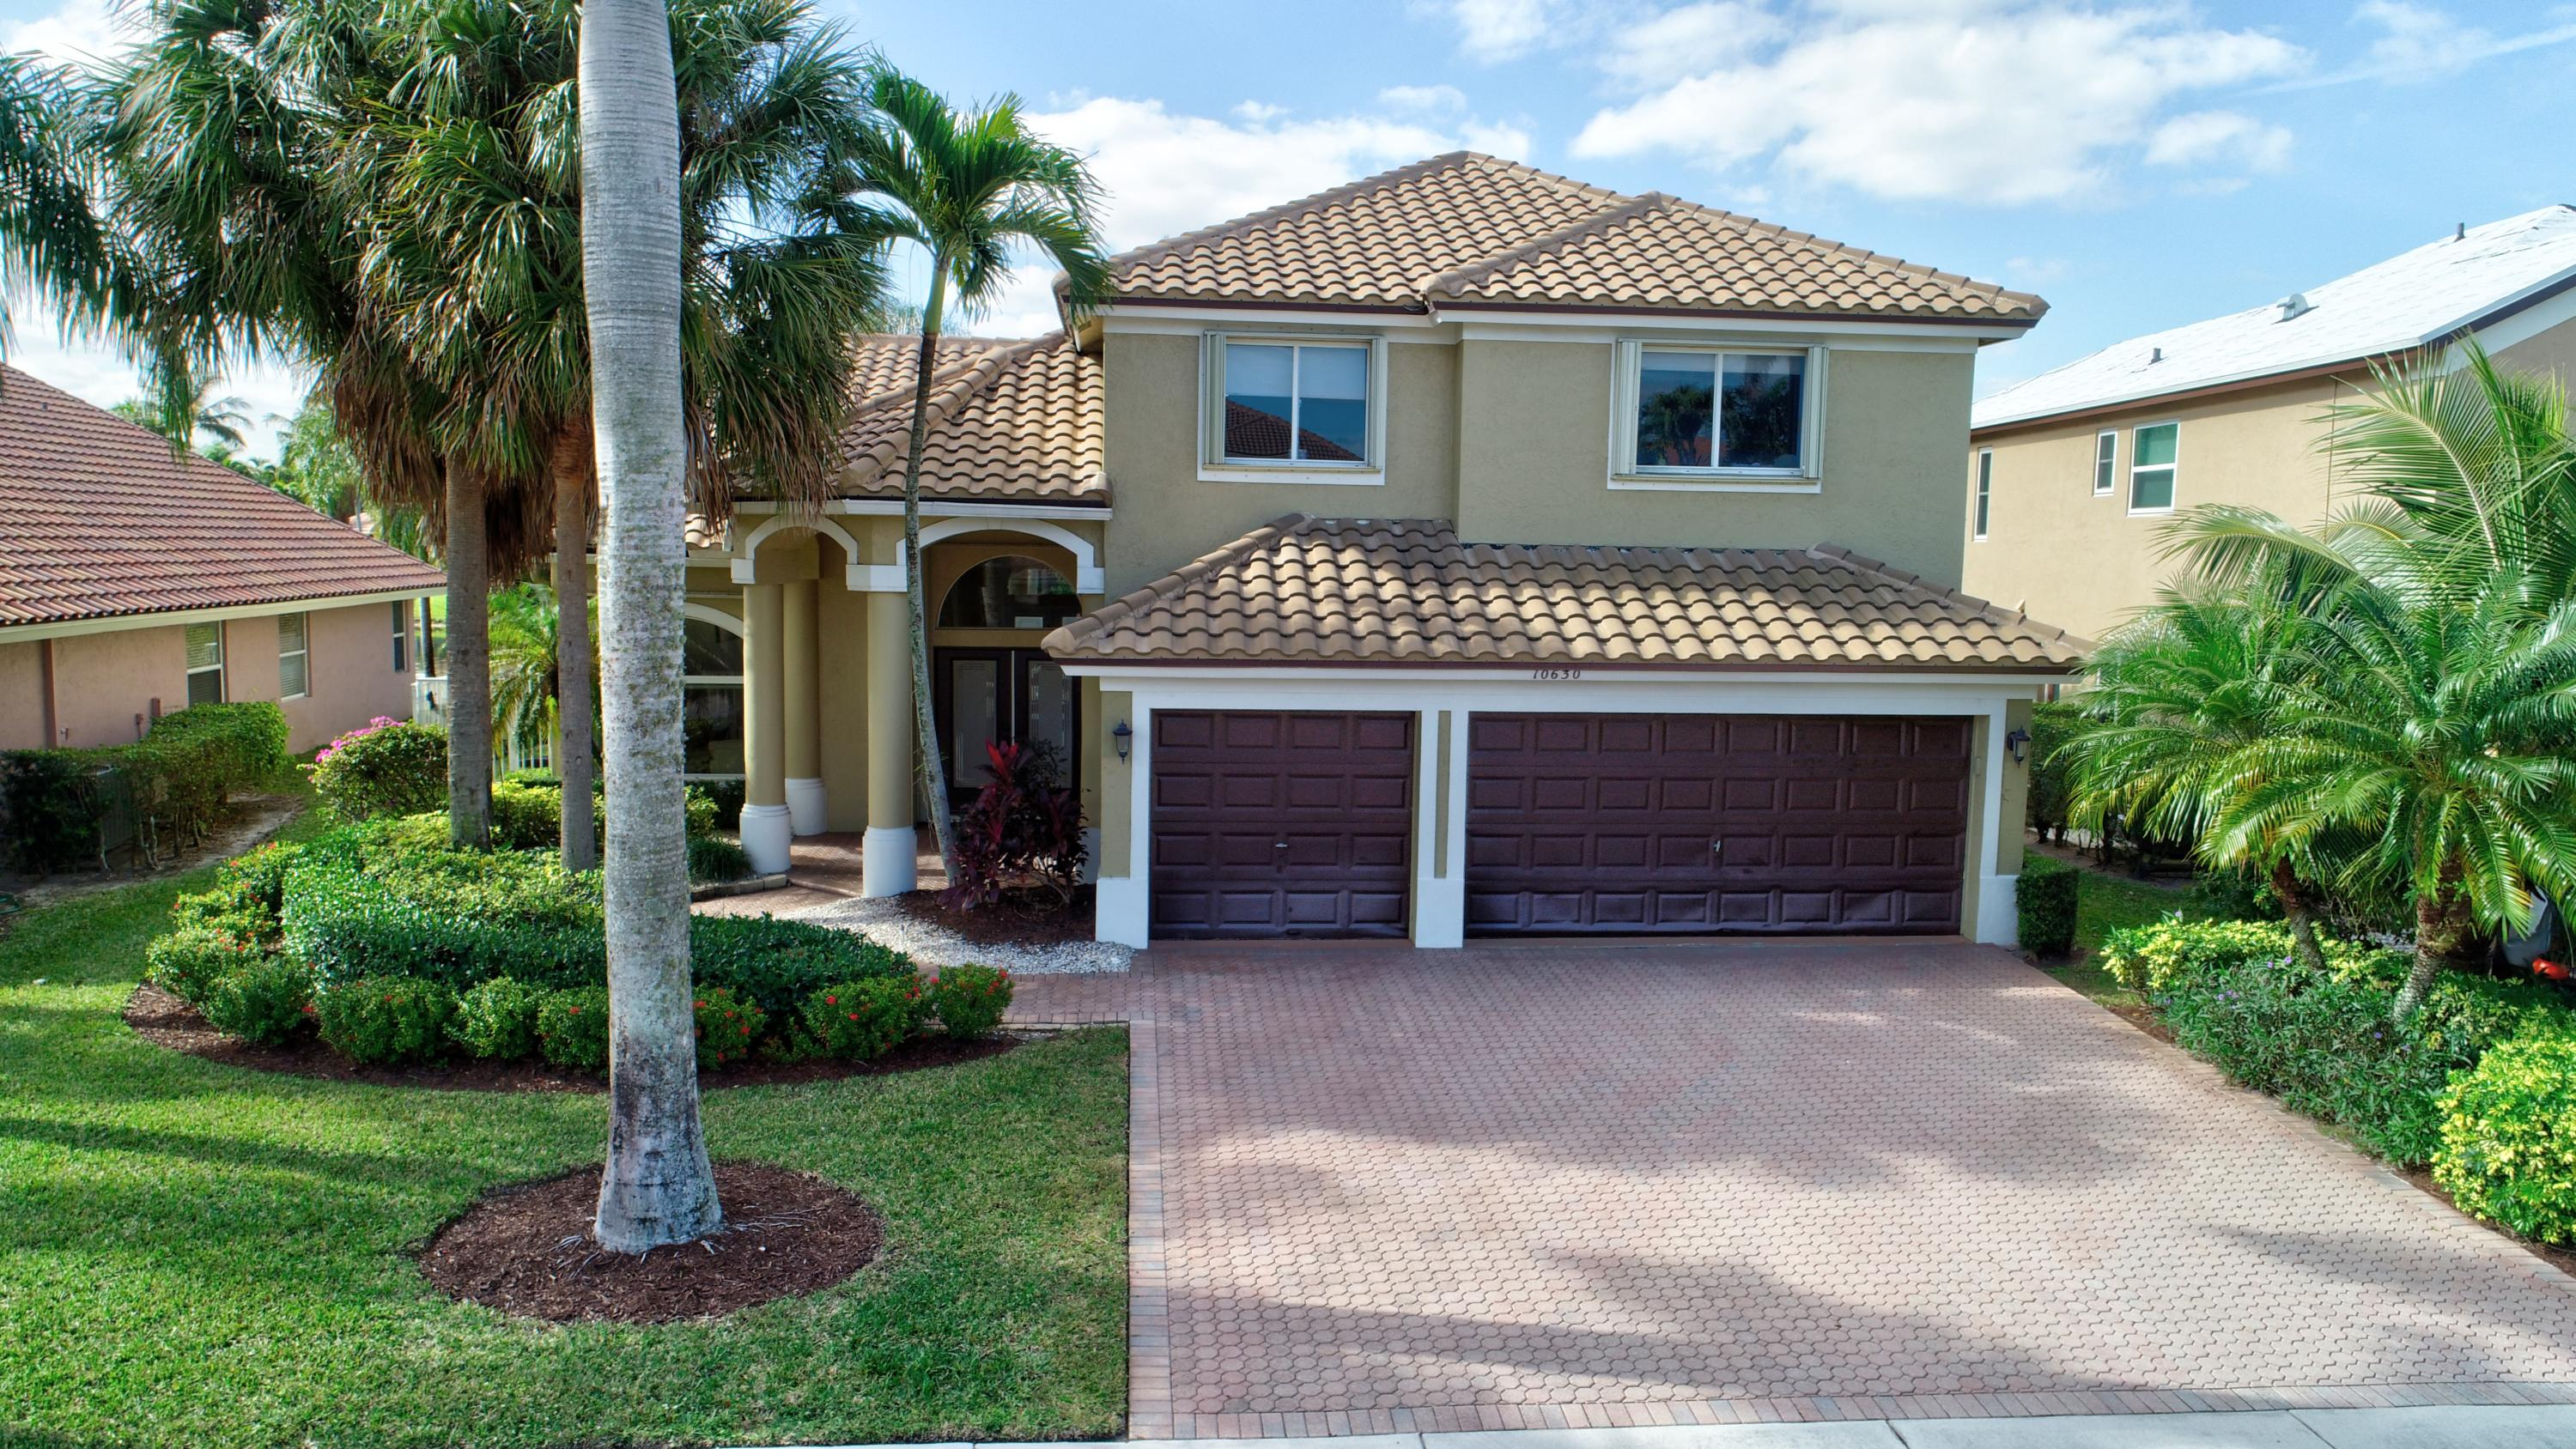 Photo of 10630 St Thomas Drive, Boca Raton, FL 33498